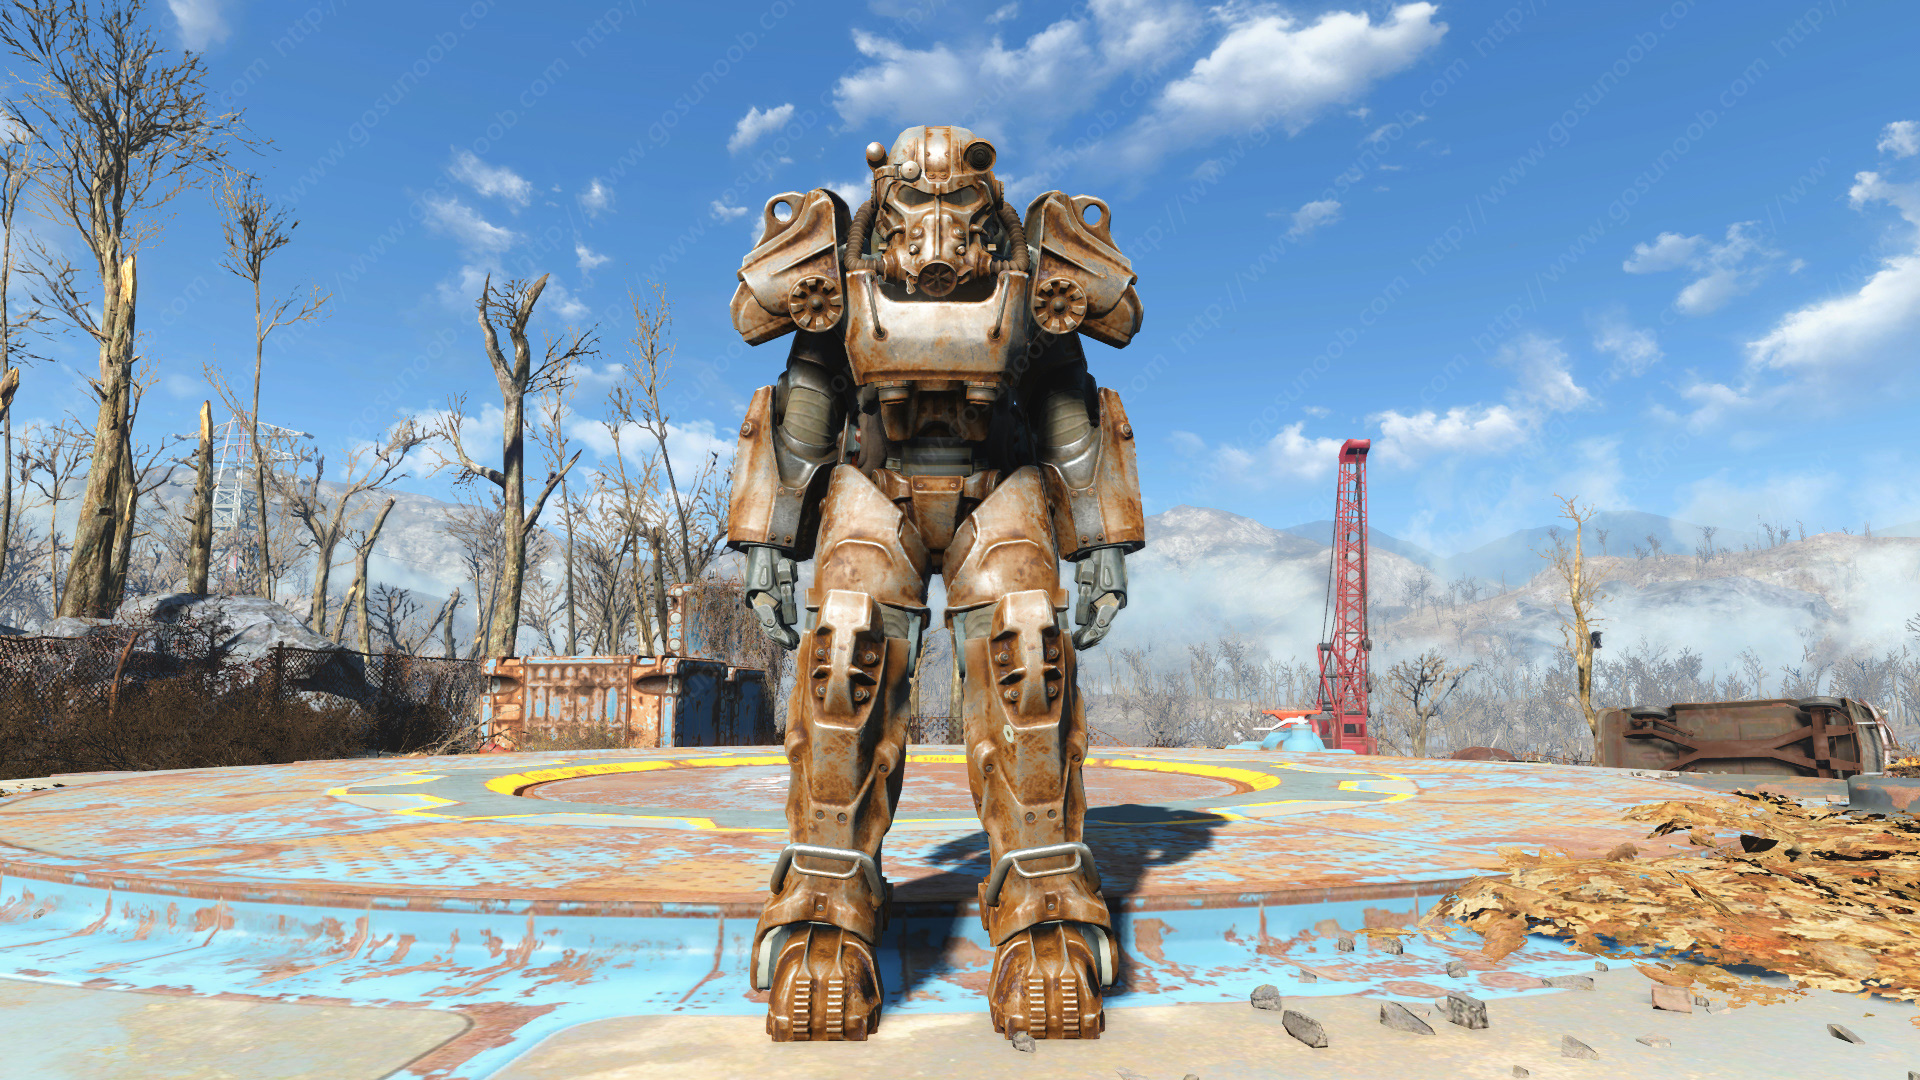 pre_1451928985__fallout-4_t-60_power-arm